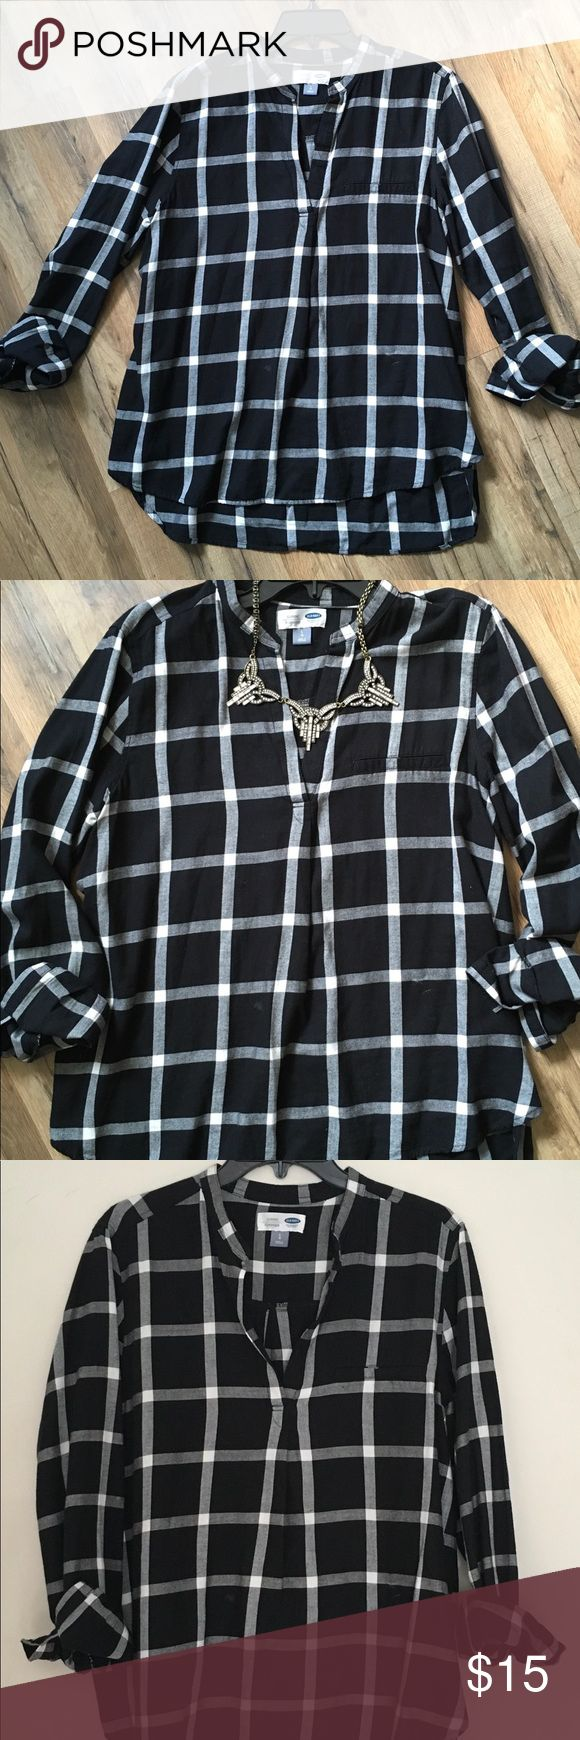 Old Navy Plaid Tunic Long sleeve plaid tunic from Old Navy. Fits with an A-line hem, so looser around the waist which goes perfectly with leggings and boots or skinny jeans. Also pairs great with a dark blazer and necklace for work. No holes or tears. Old Navy Tops Tunics